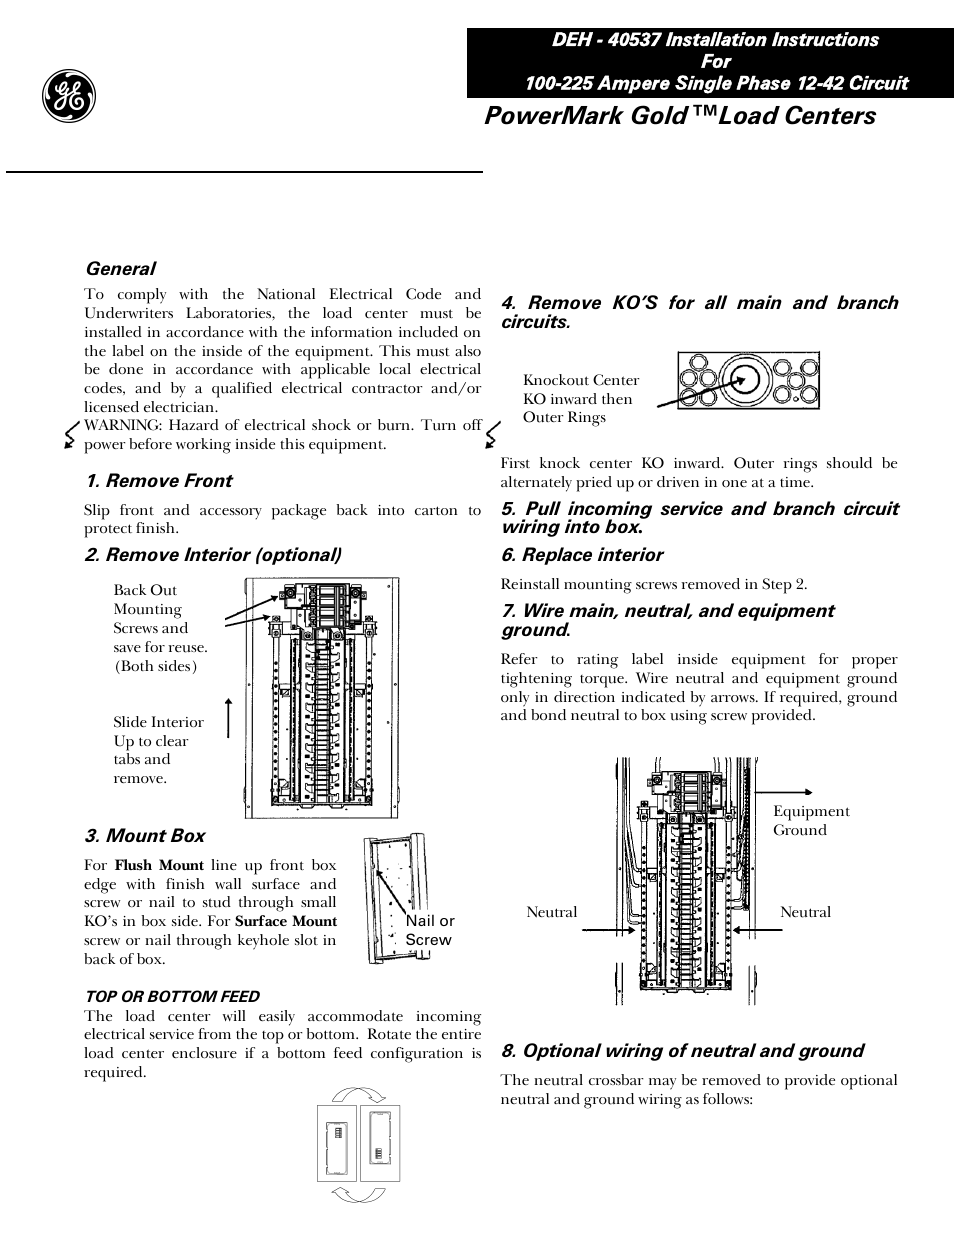 ge industrial solutions power mark gold load centers page1?resize=665%2C861 qo2l30s load center wiring diagram wiring diagram qo2l30s load center wiring diagram at bakdesigns.co